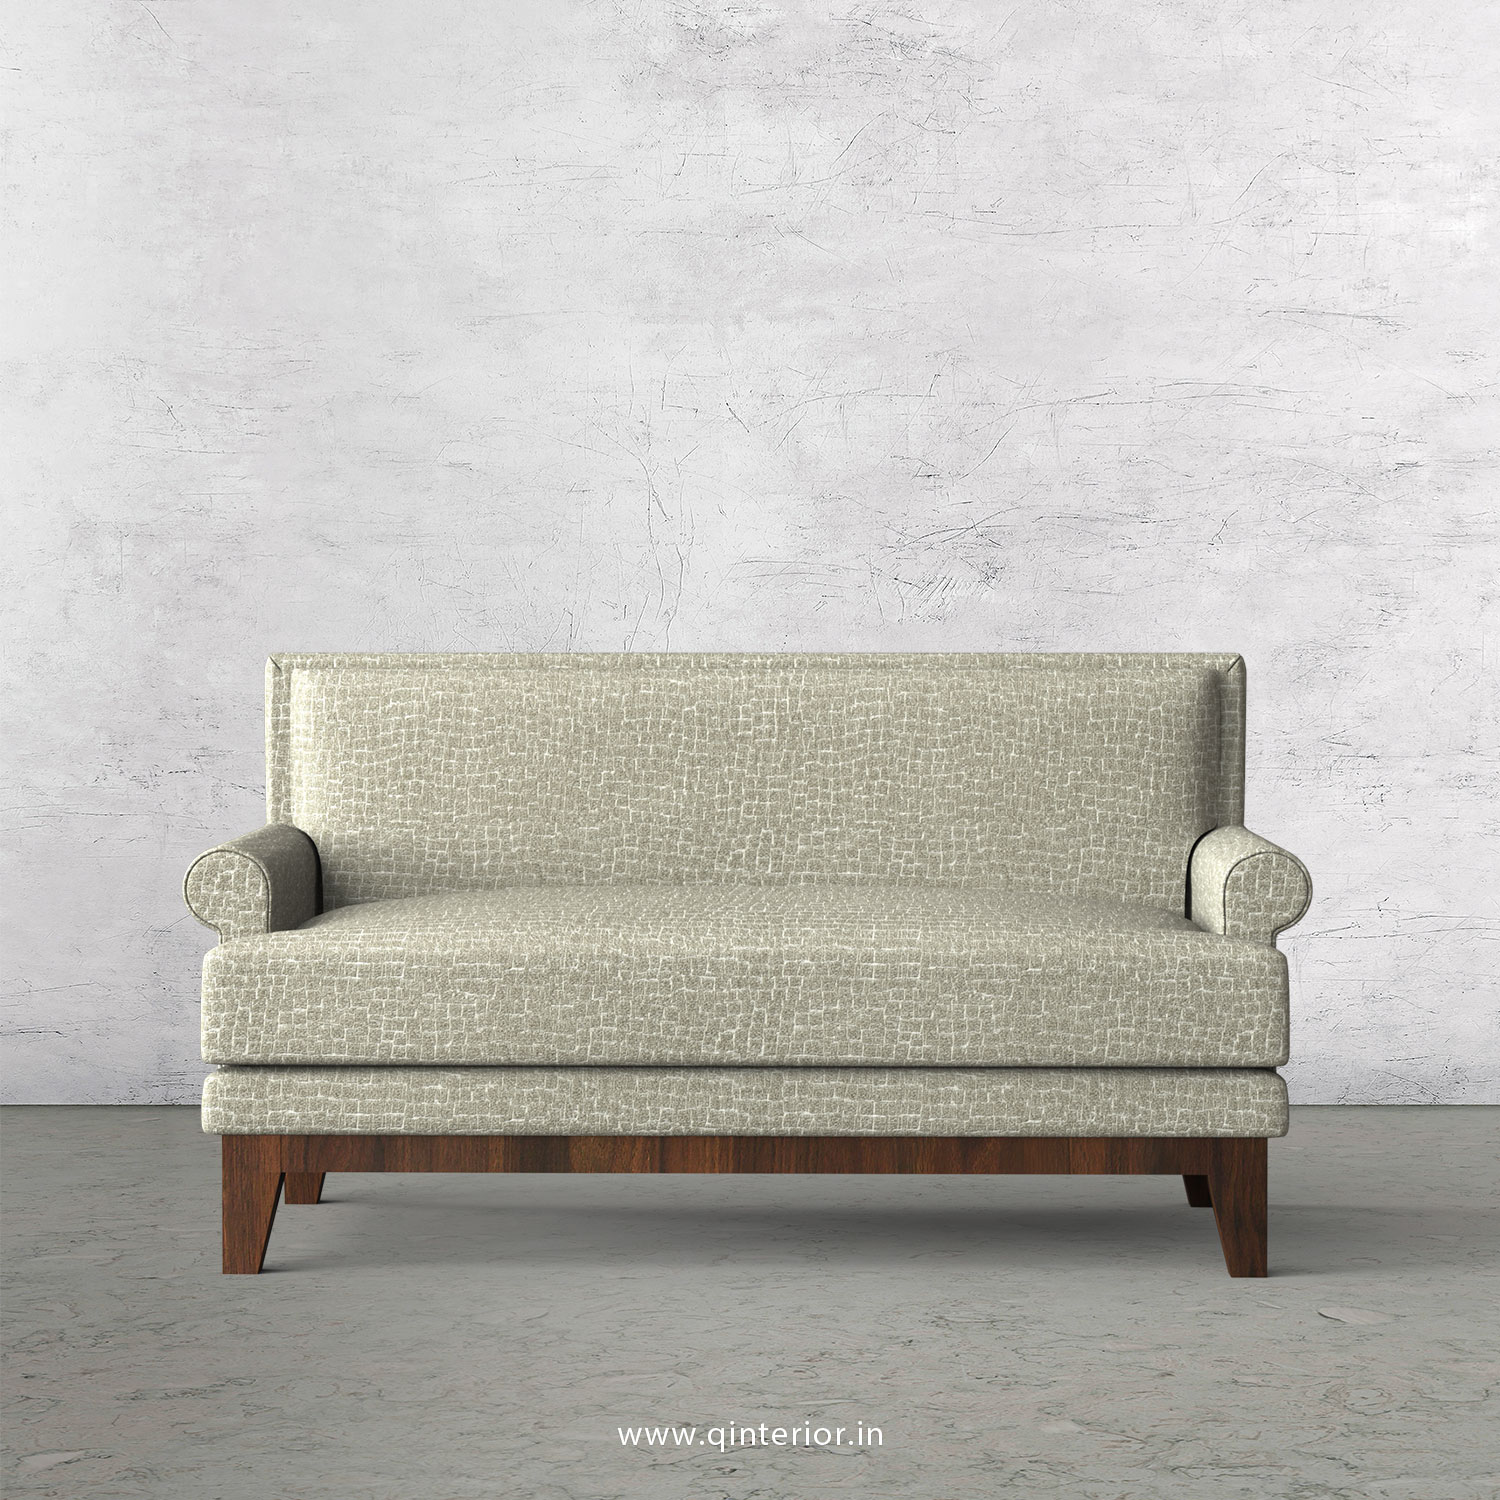 Aviana 2 Seater Sofa in Jacquard - SFA001 JQ31